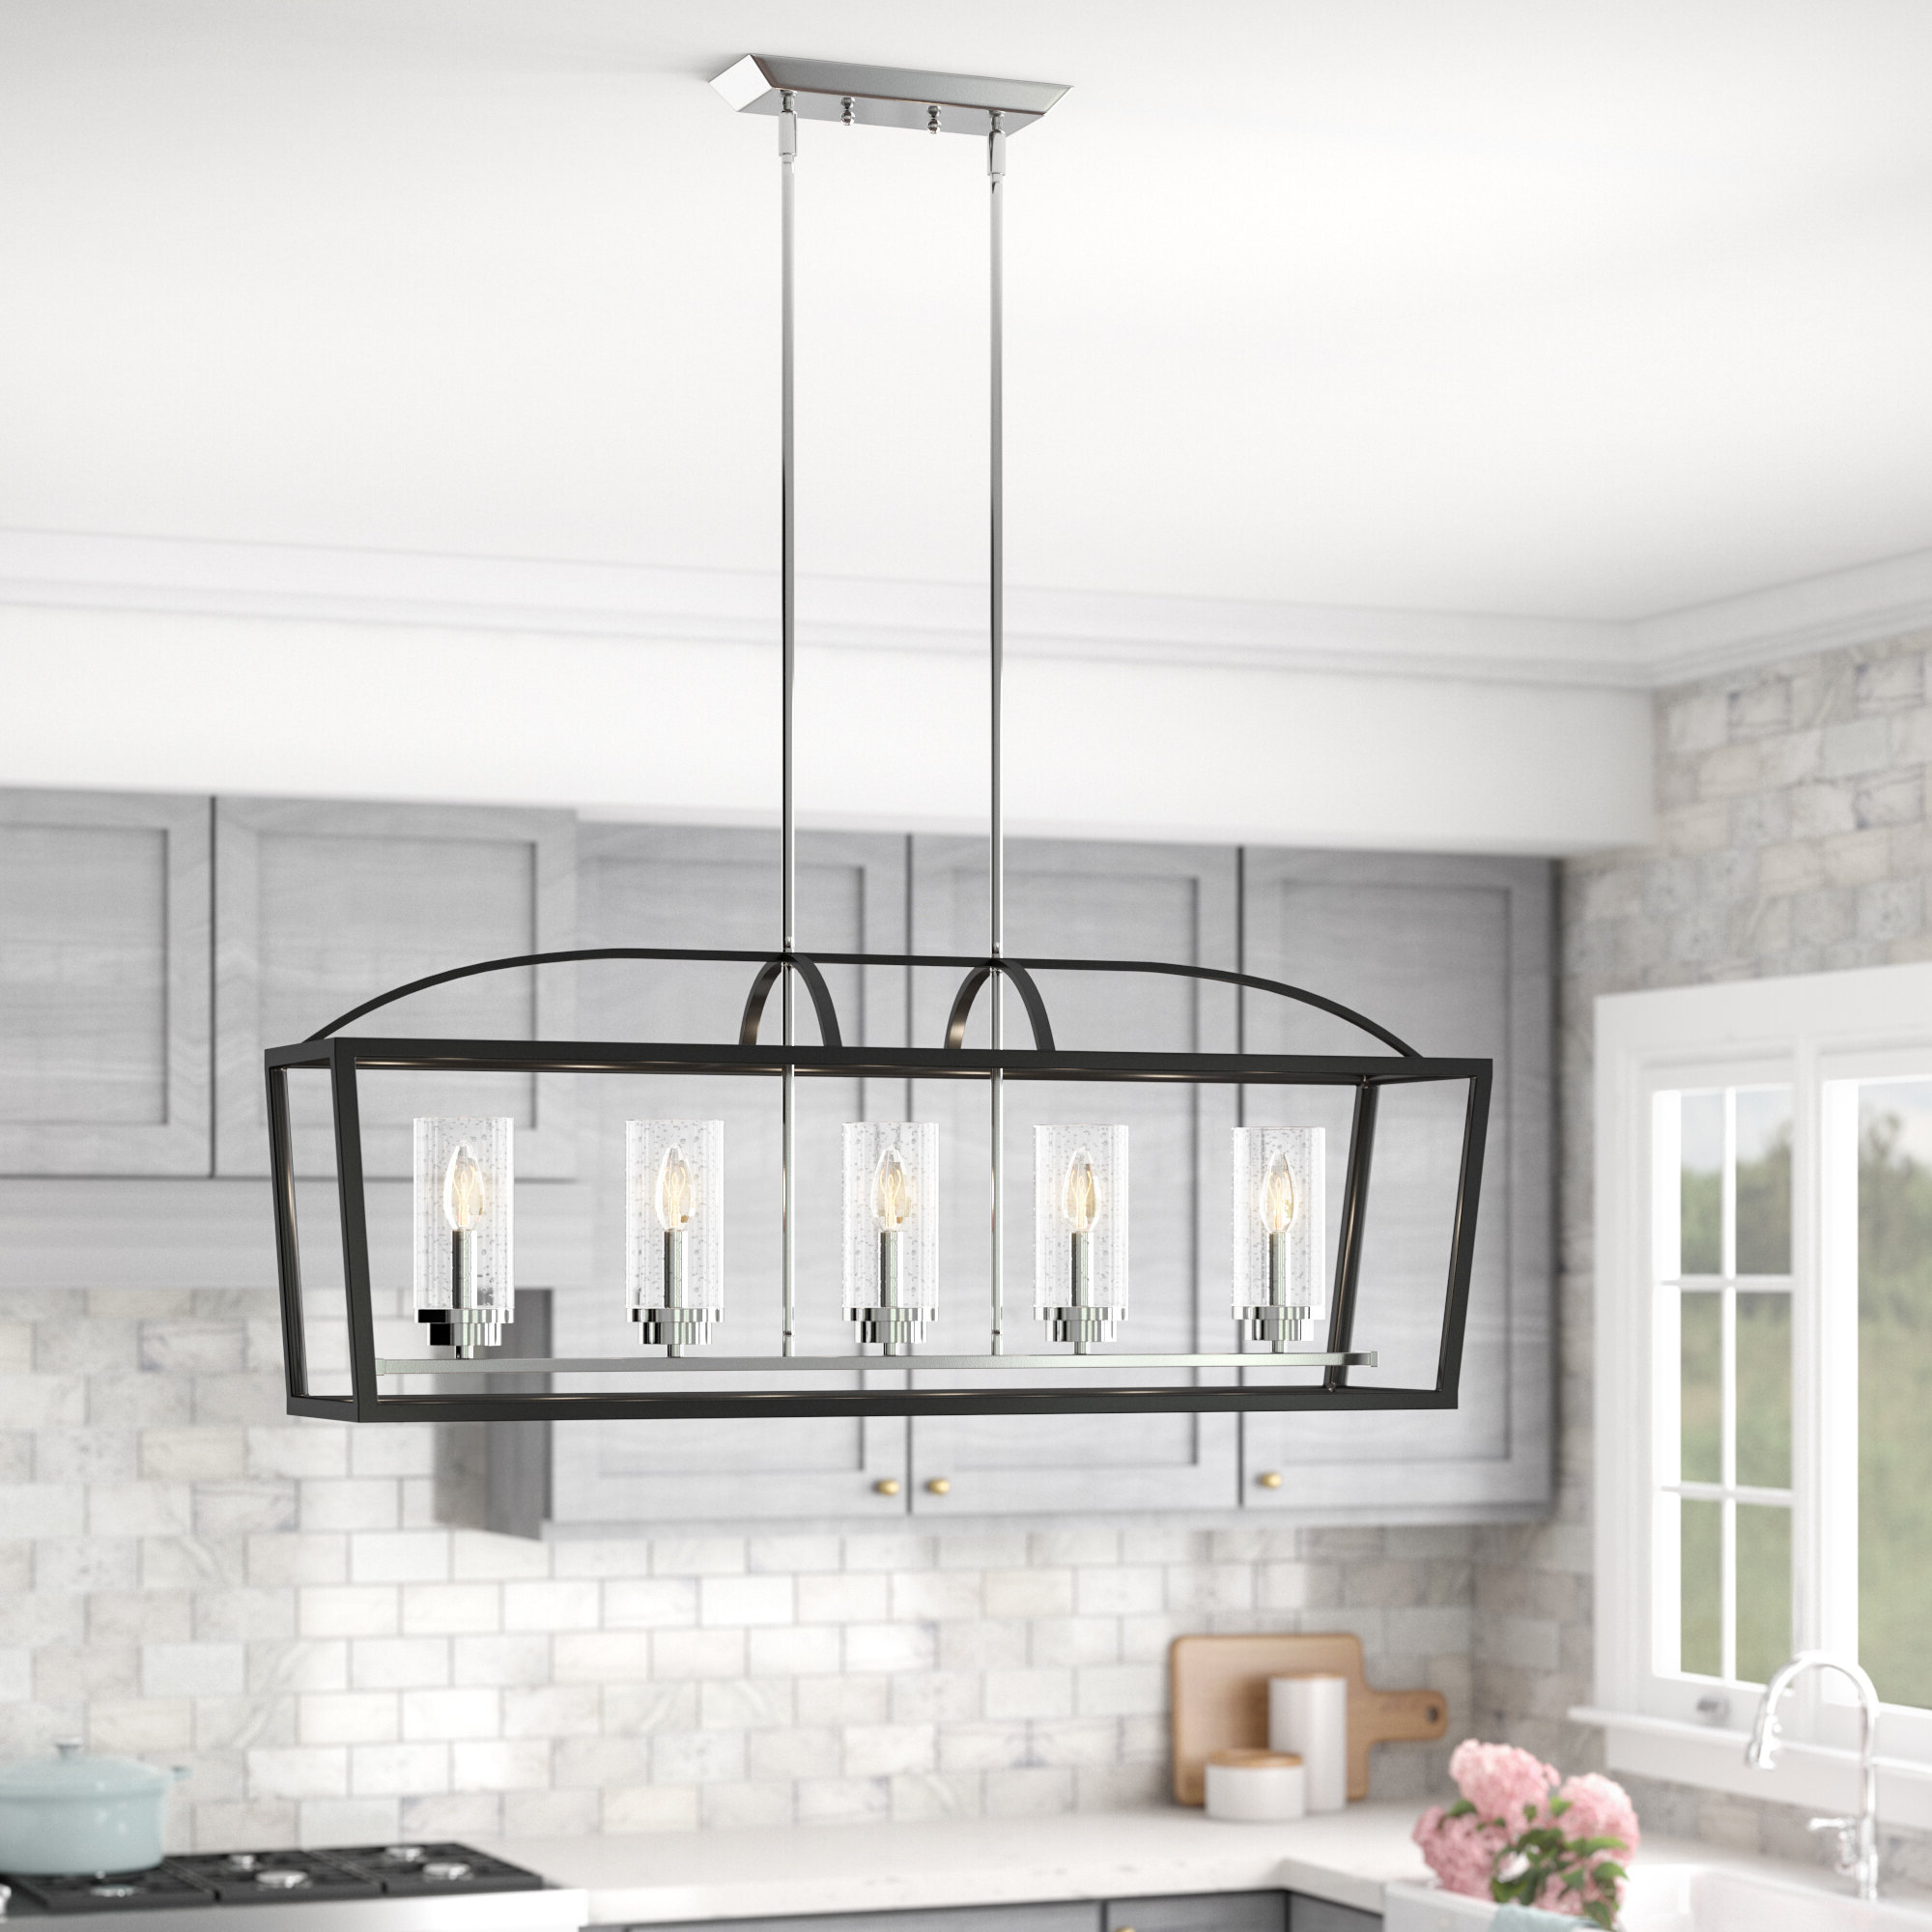 Luna 5 Light Kitchen Island Linear Pendant Inside Fashionable Delon 5 Light Kitchen Island Linear Pendants (View 11 of 20)